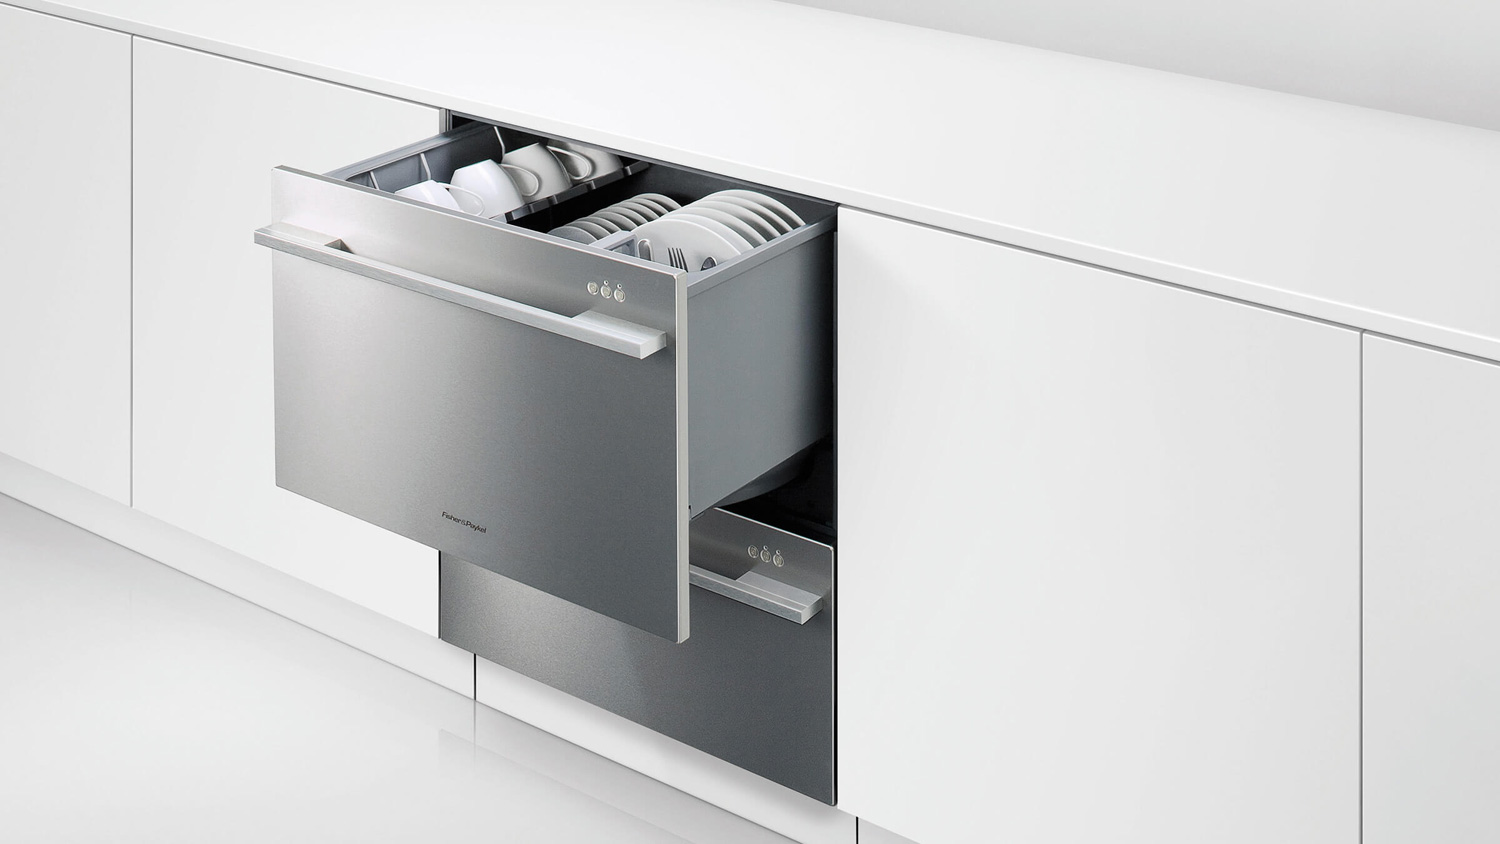 Fisher & Paykel DishDrawers vs. Standard Dishwashers